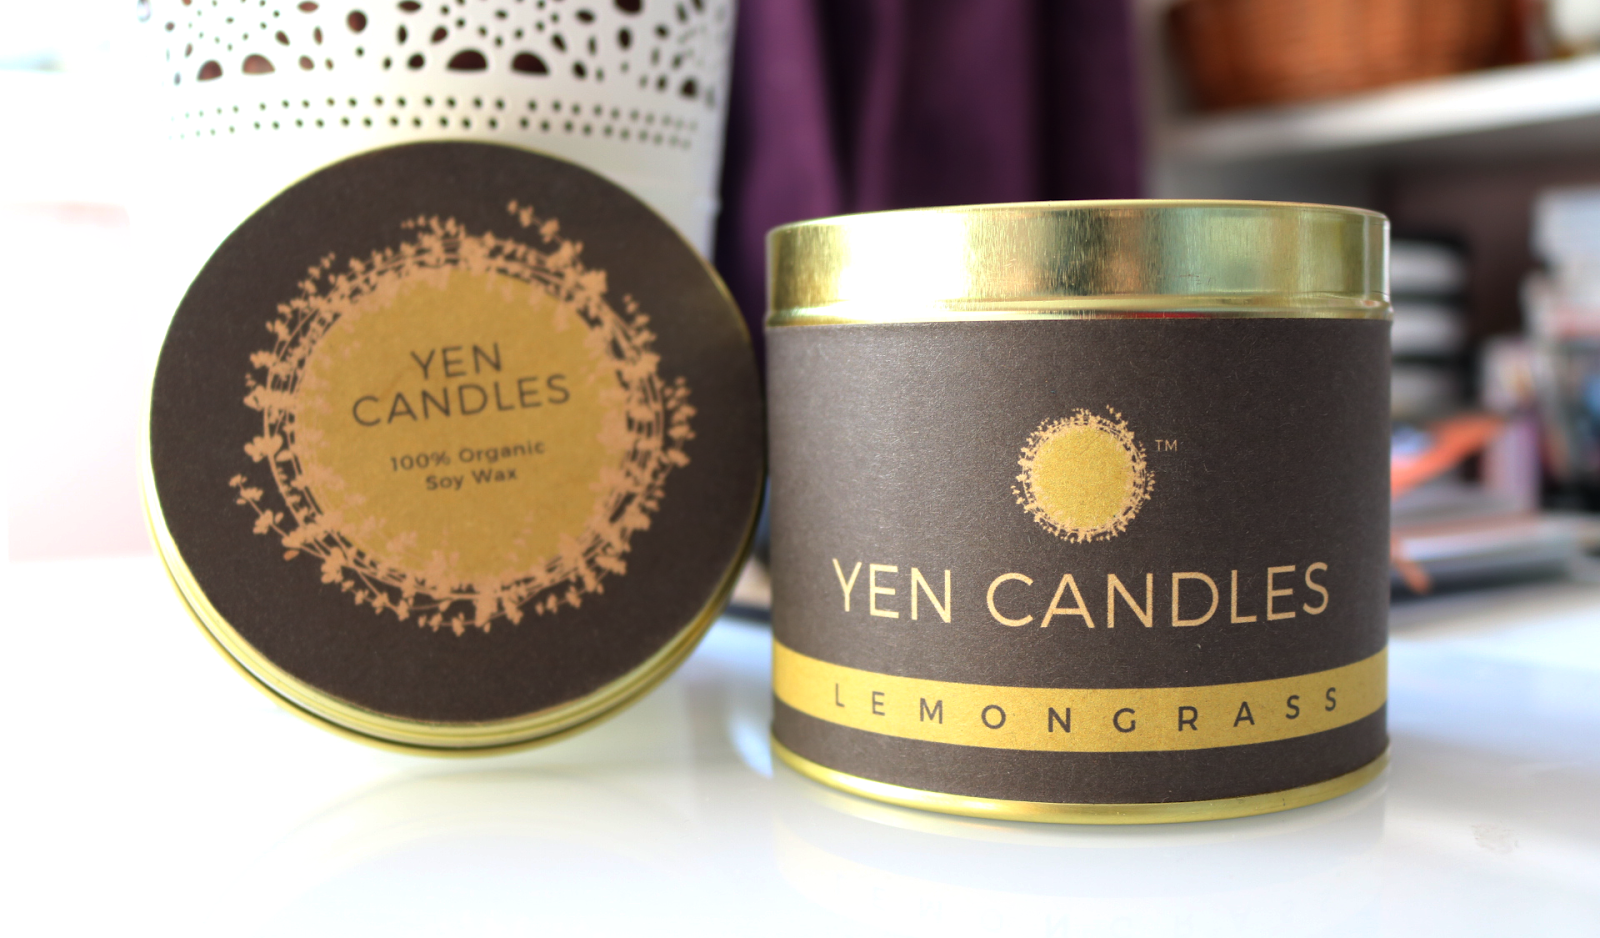 Yen Candles - 100% Organic Soy Wax Candle in Lemongrass review